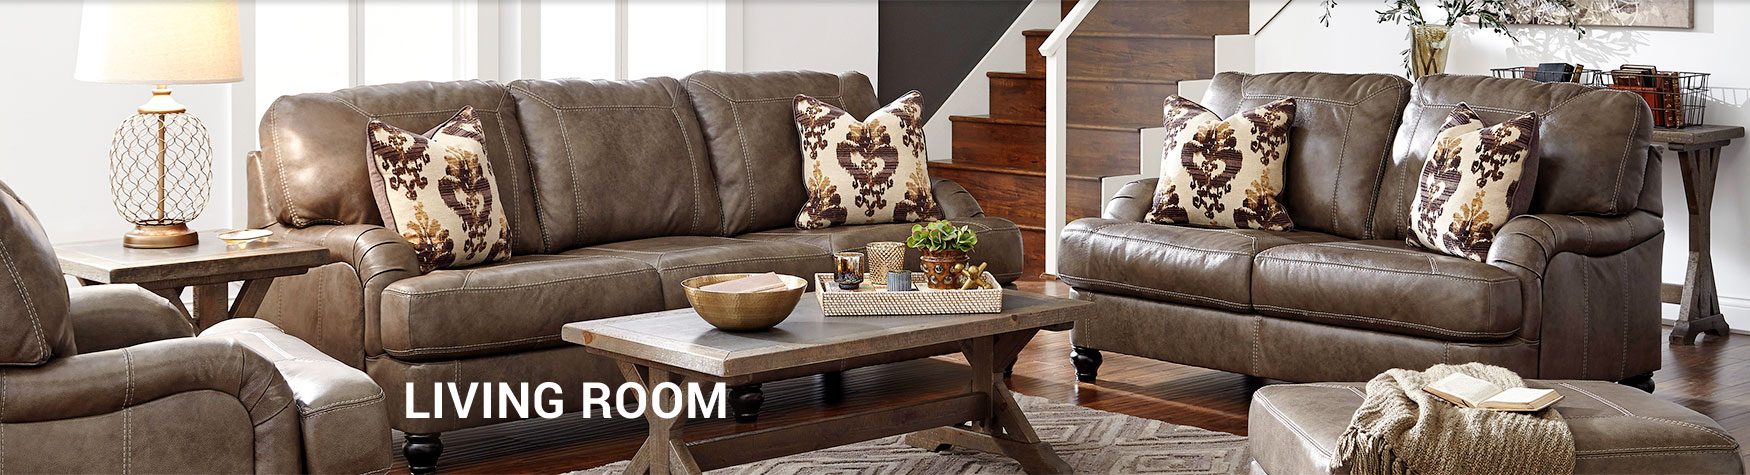 living room furniture for sale small design ideas 2018 on in spokane valley wa post falls id jpg